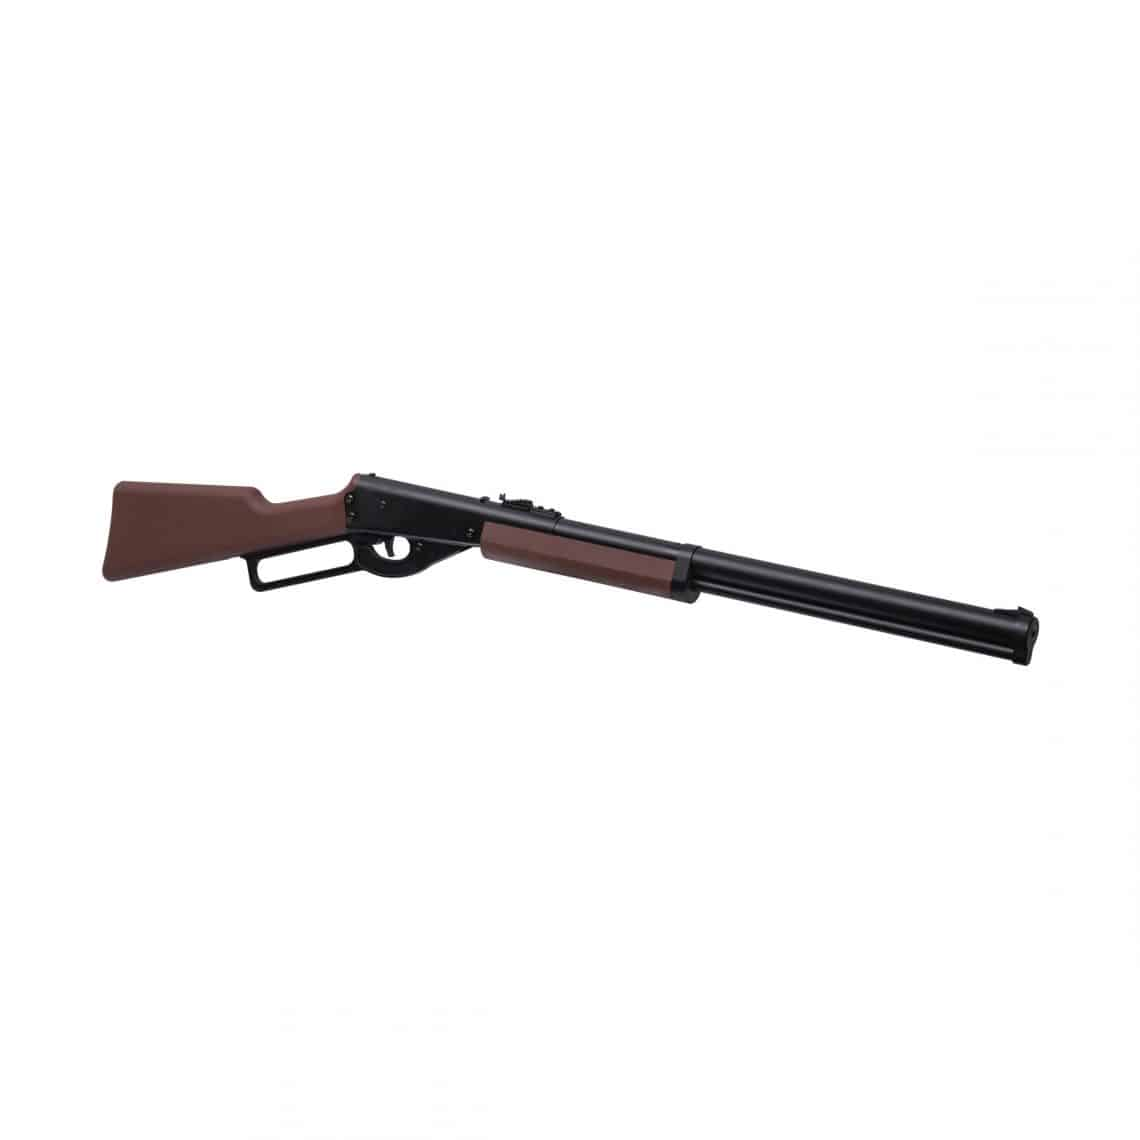 9f1c0295cee CROSMAN MARLIN CLASSIC LEVER ACTION BB GUN - Northwoods Wholesale Outlet